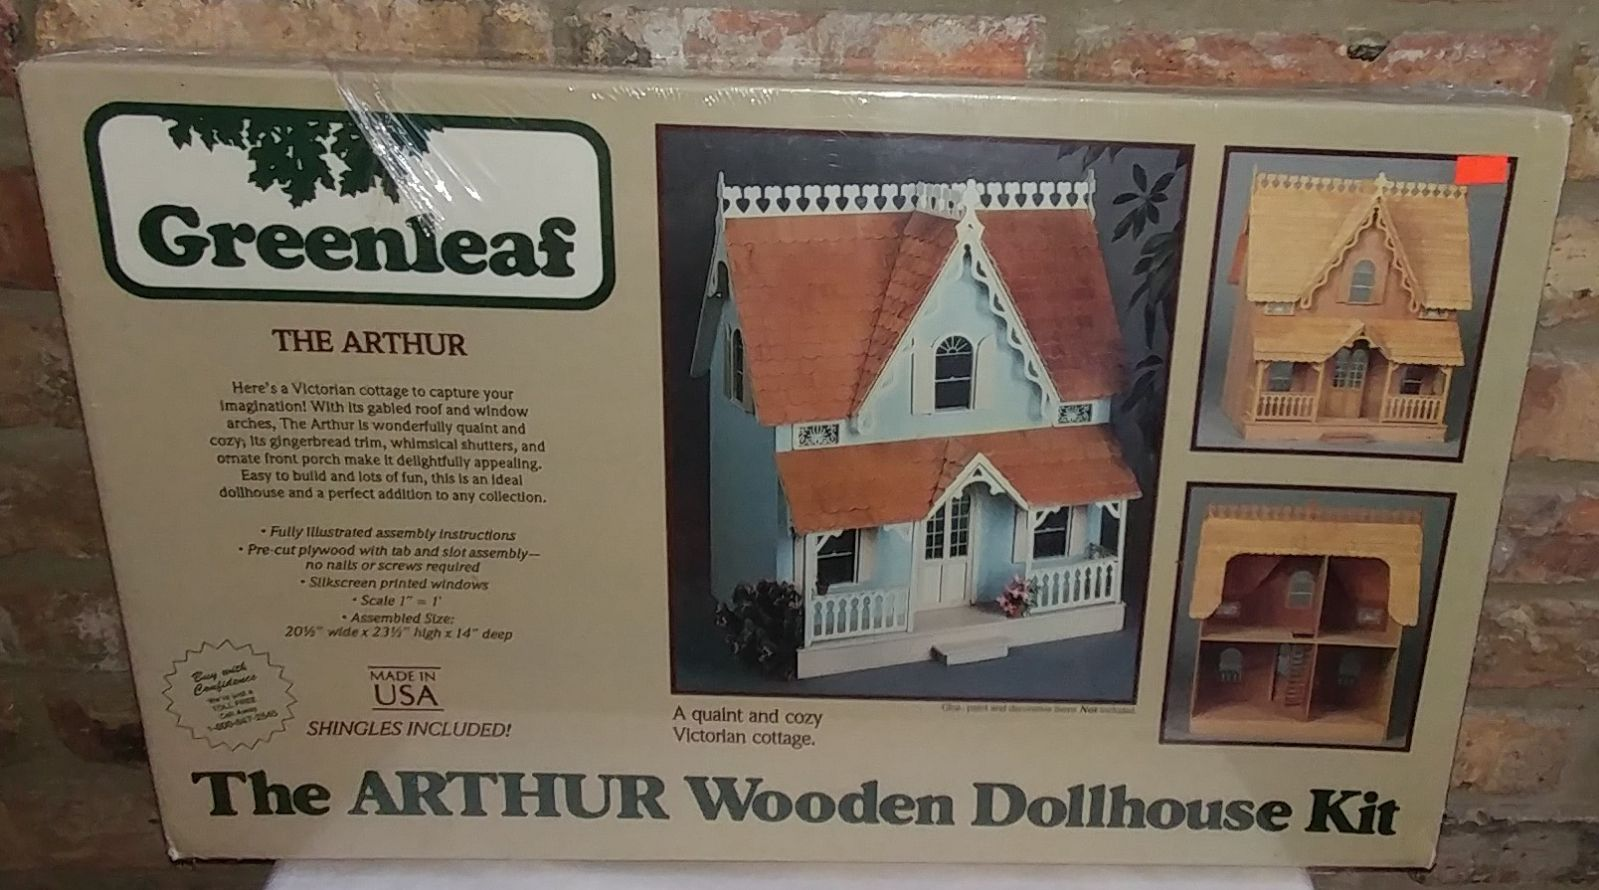 The Arthur Wooden Dollhouse Kit 1:12